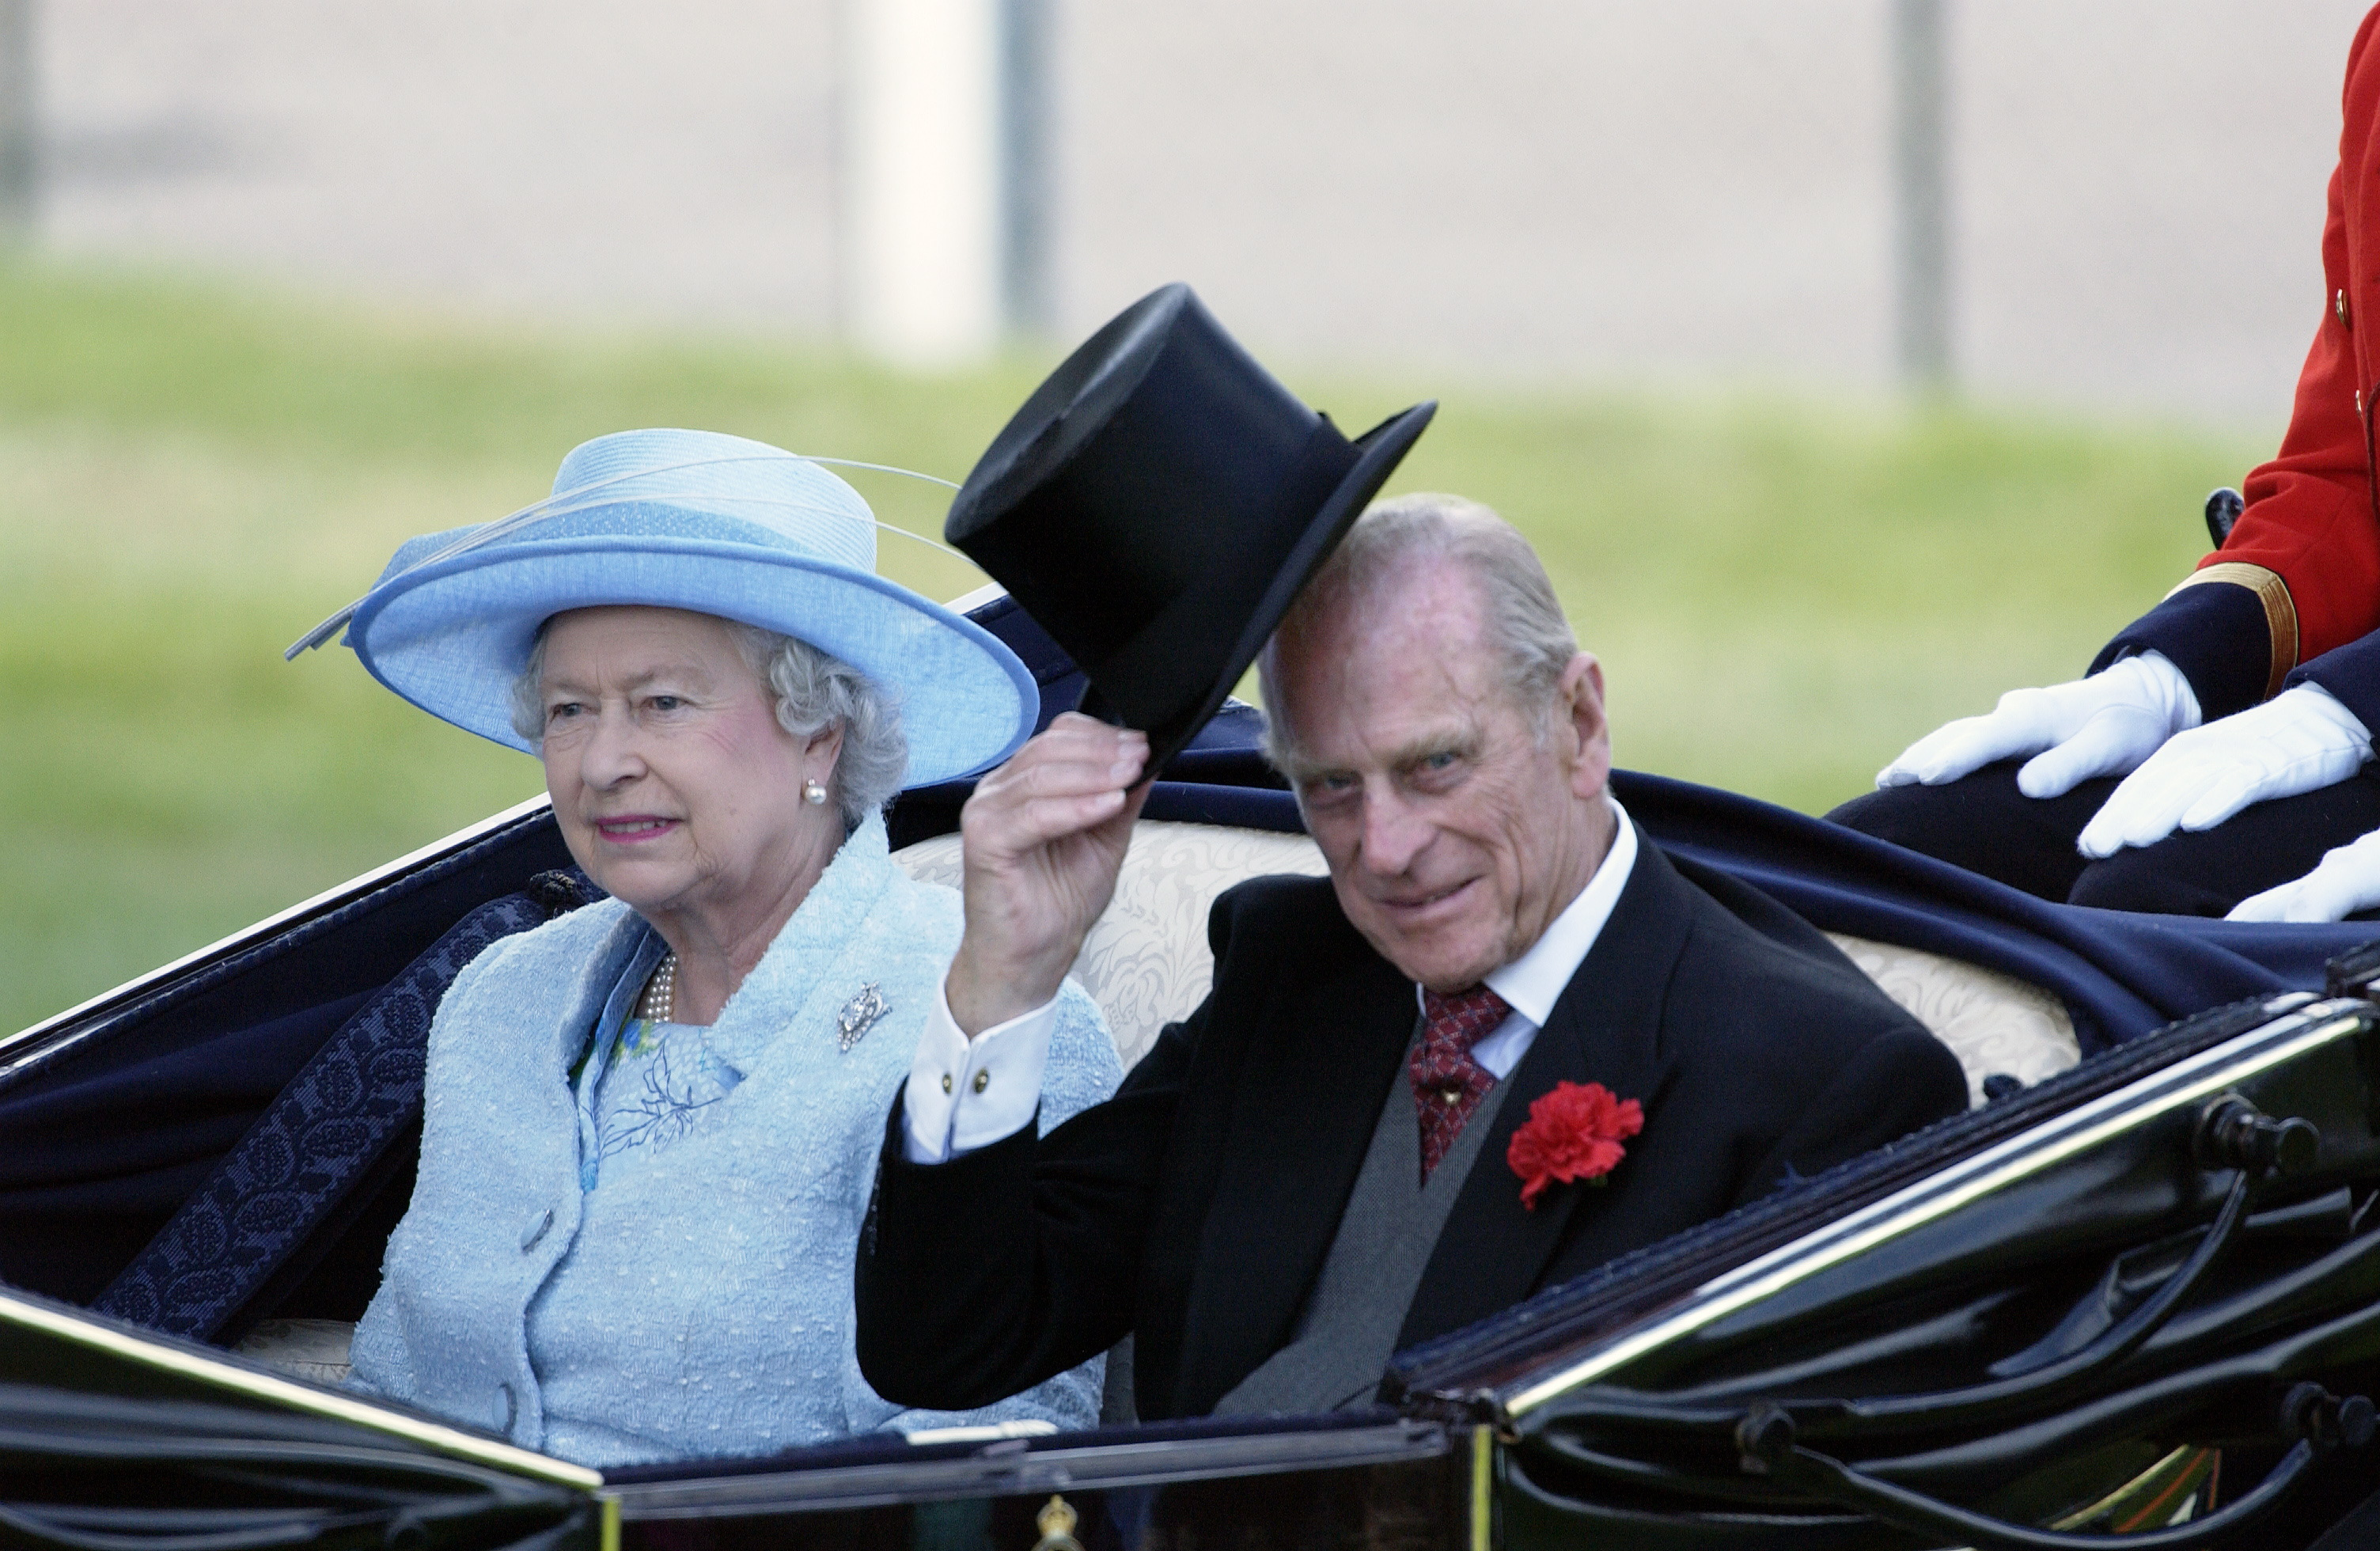 Queen Elizabeth and Prince Philip at the Royal Ascot Races on June 16, 2004.